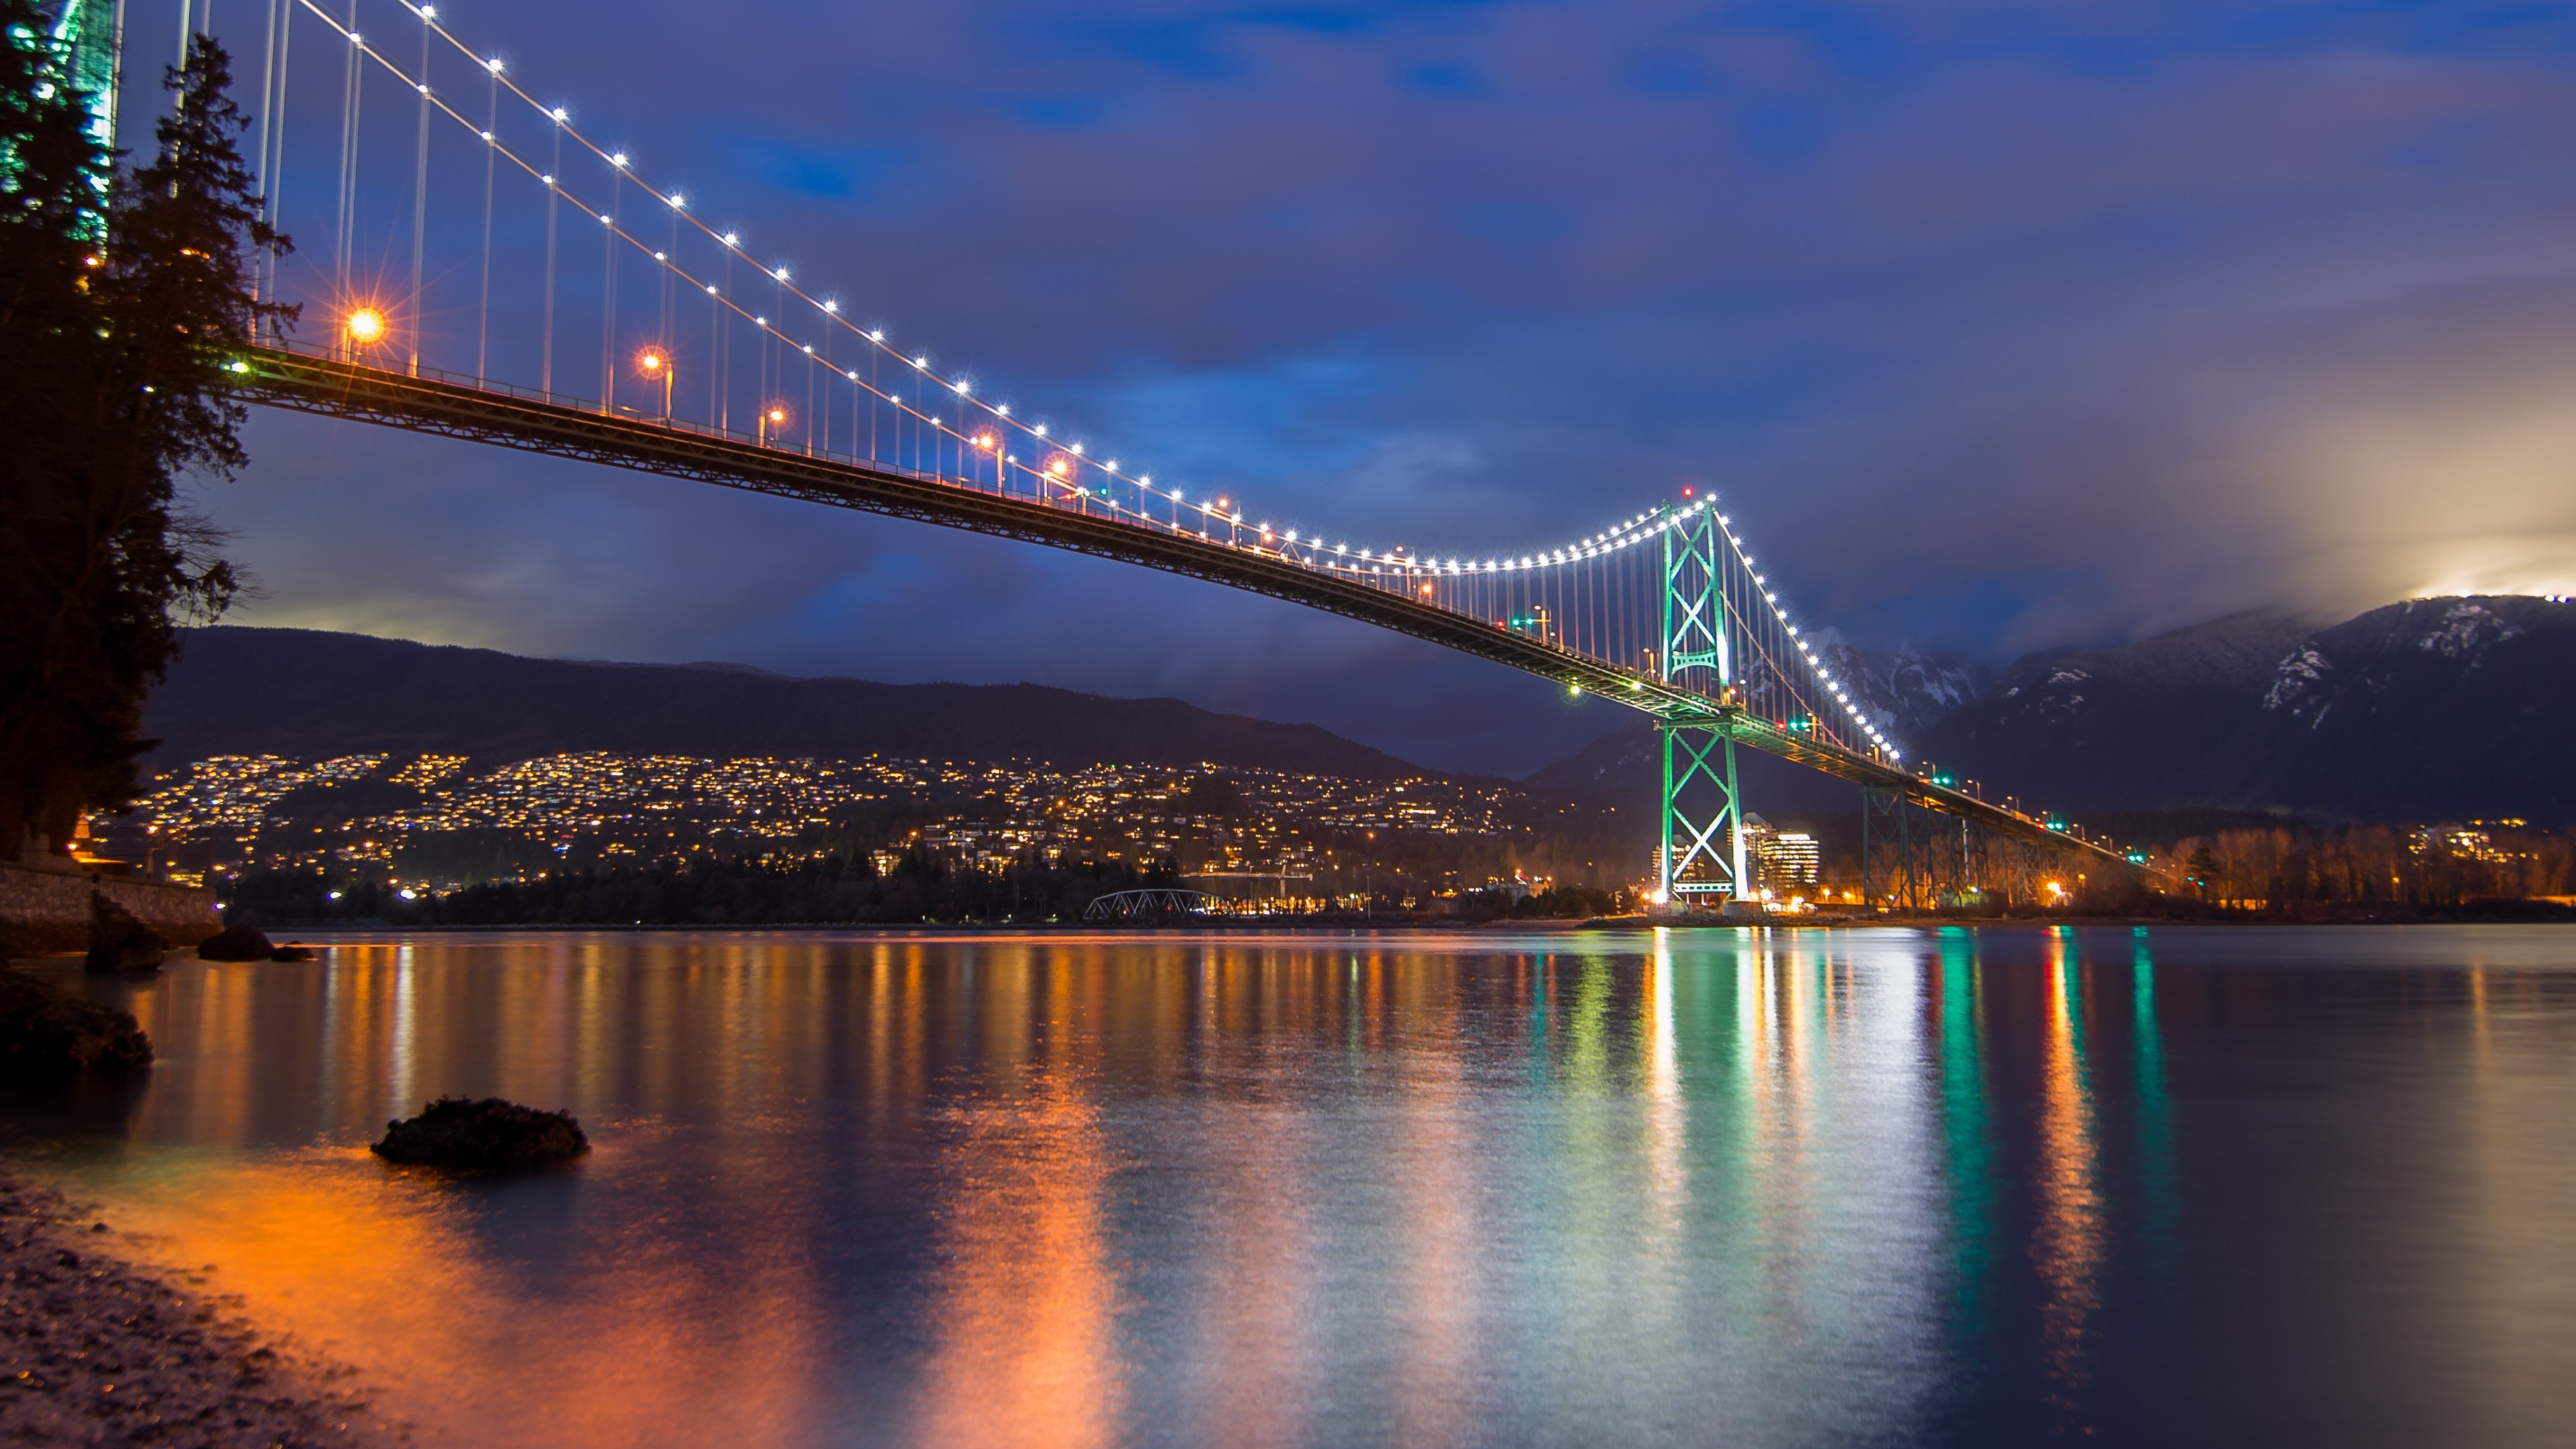 Lions Gate Bridge, Burrard Inlet, British Columbia wallpaper 3840x2160